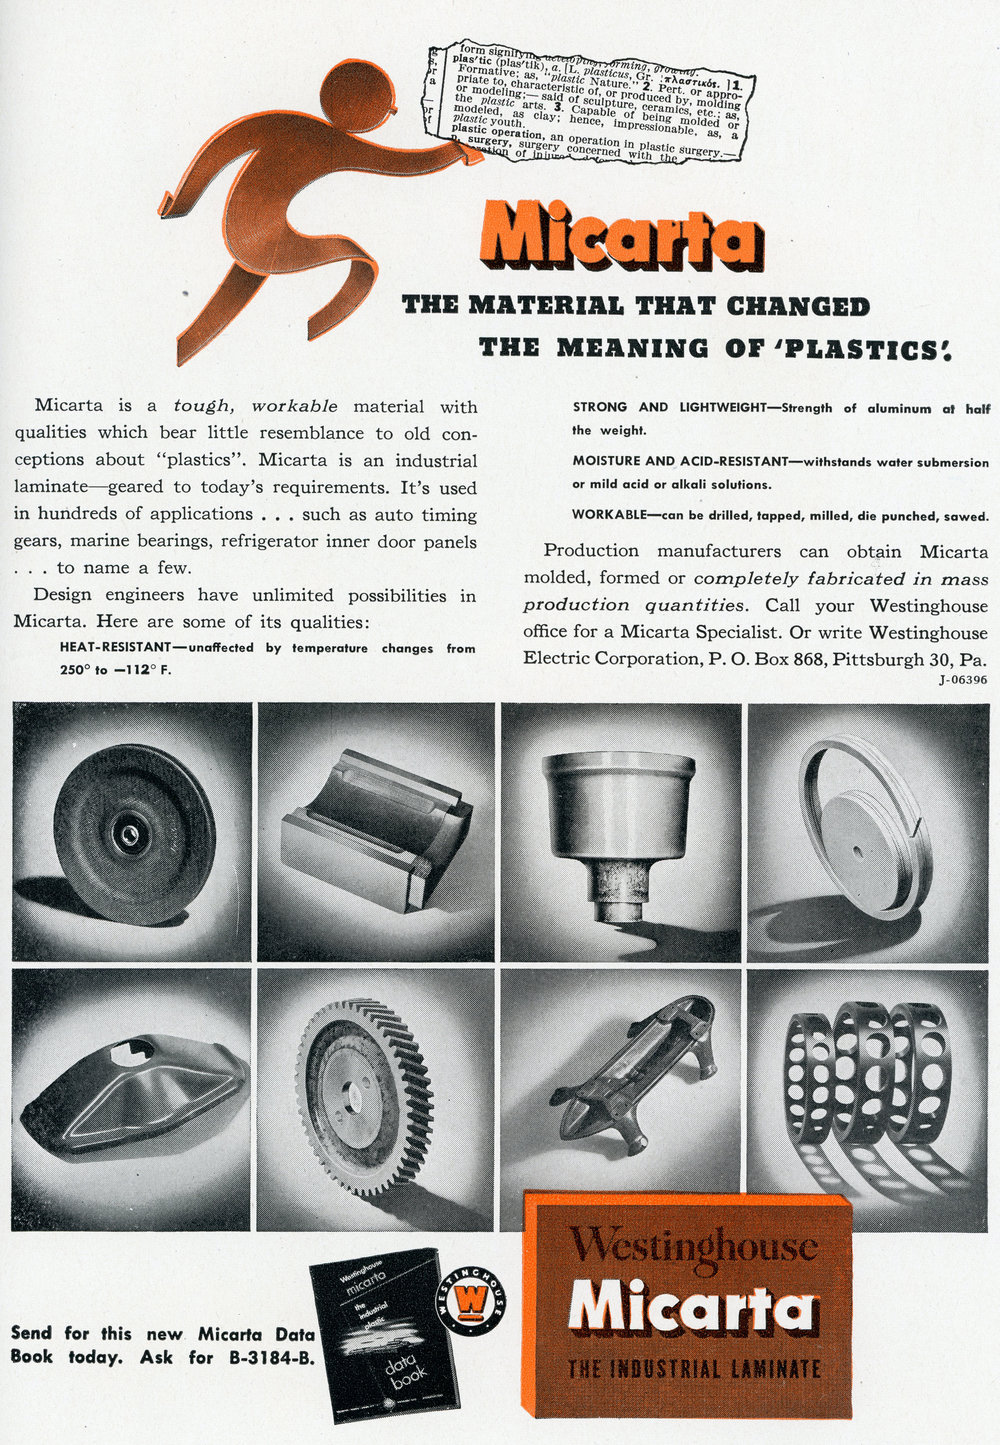 Material That Changed the Meaning of Plastics - Westinghouse Micarta